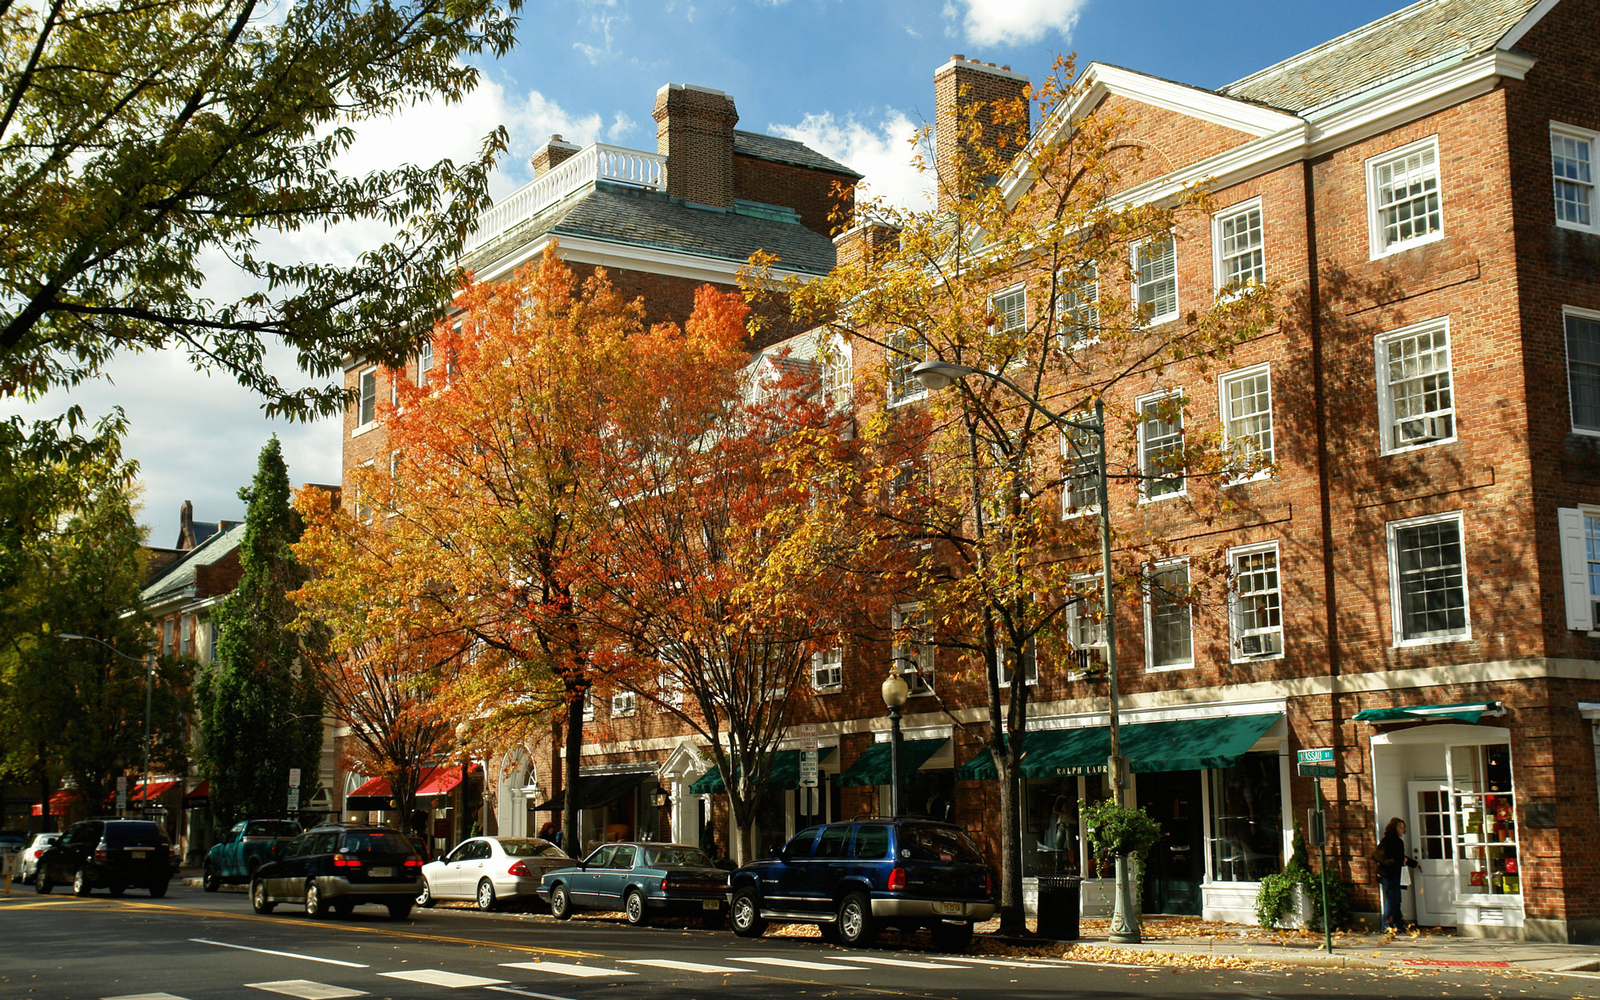 downtown shops in fall time in princeton nj - Halloween Store New Jersey